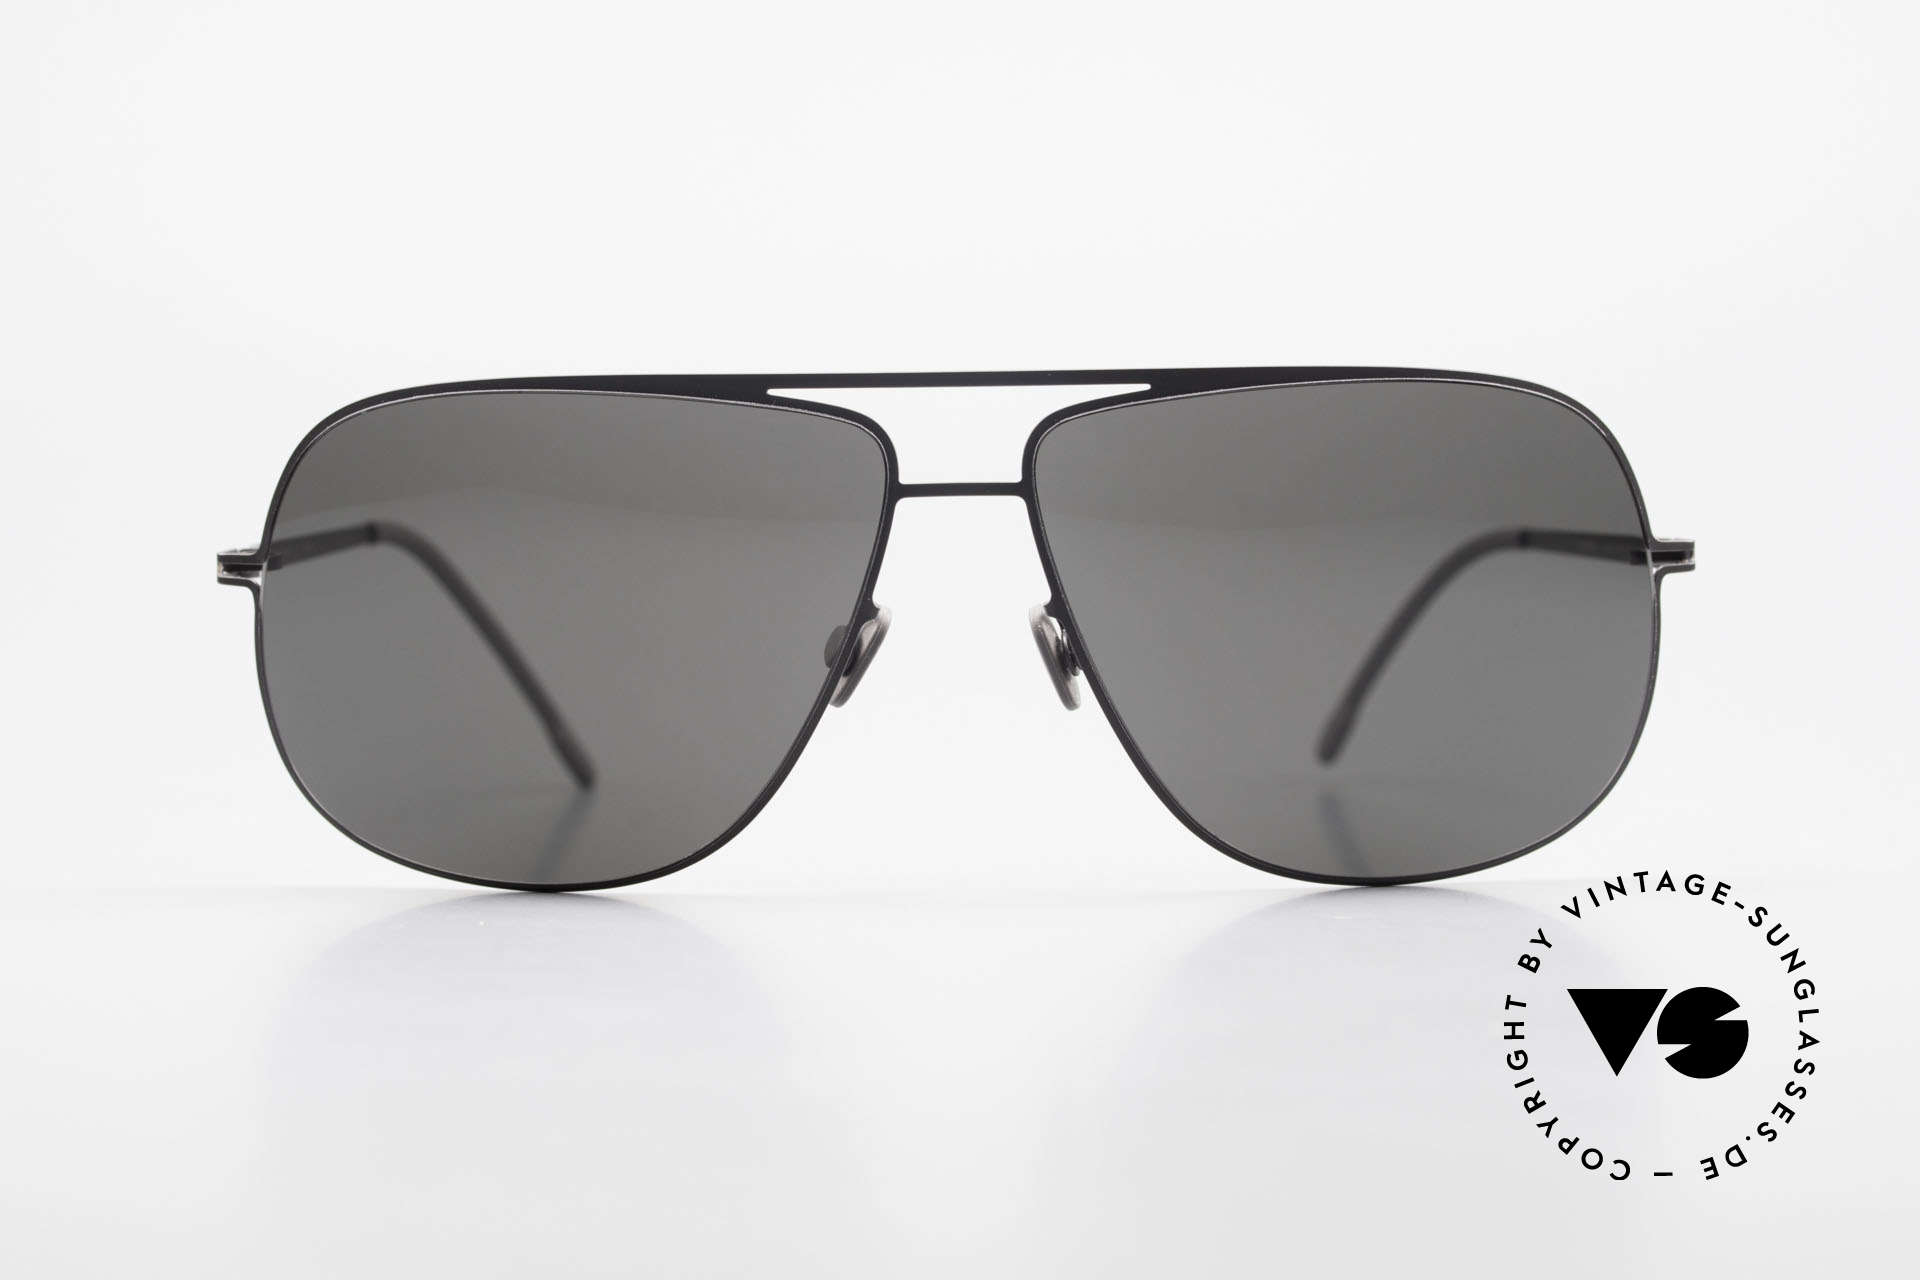 Mykita Jon Lite Metal Designer Sunglasses, MYKITA: the youngest brand in our vintage collection, Made for Men and Women